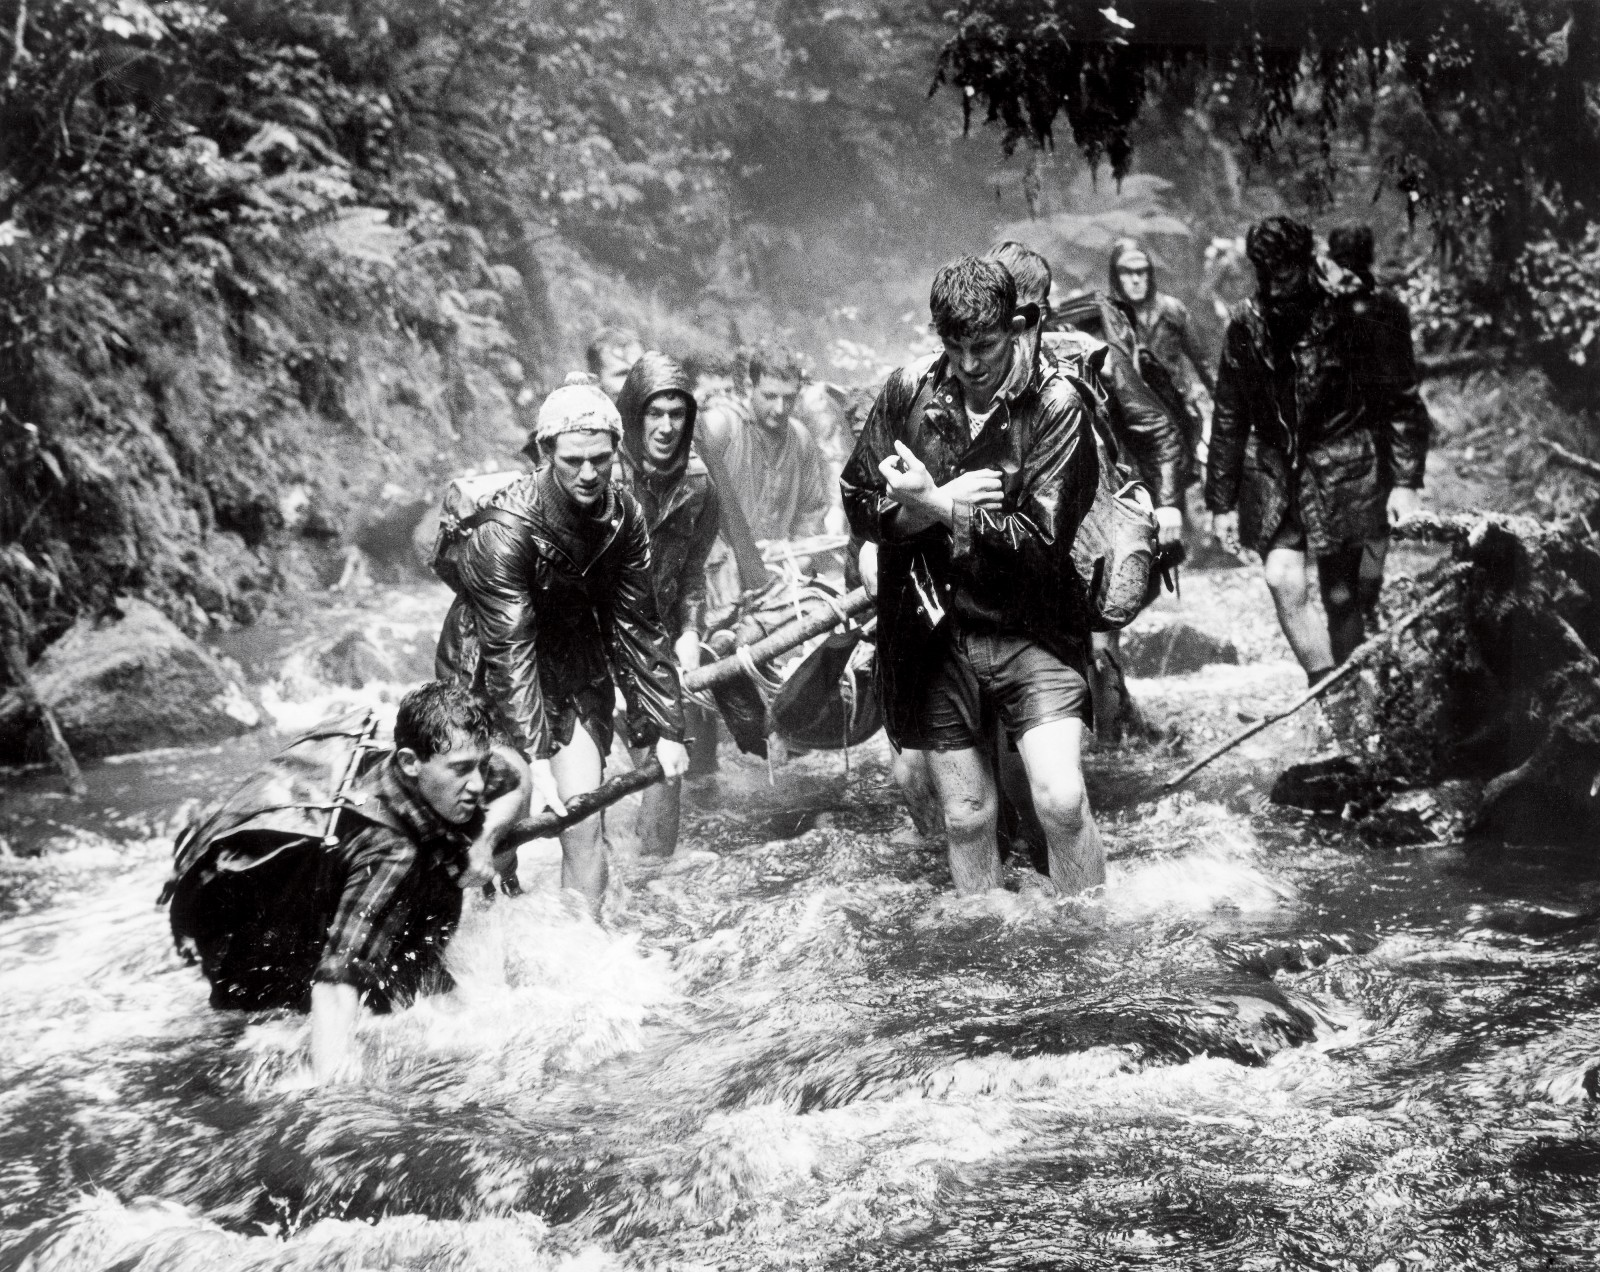 Men carry out the body of Peter Langer, who drowned in the Nga- tiawa Stream in 1964. Fifty-five people died in the Tararua Ranges between 1900 and 2003: drowning accounted for 23 and hypothermia for 14. There has also been one murder and an accident where a soldier blew himself up with a hand grenade during World War II. Before helicopters revolution- ised search and rescue from the 1960s onwards, tramping clubs performed this servic